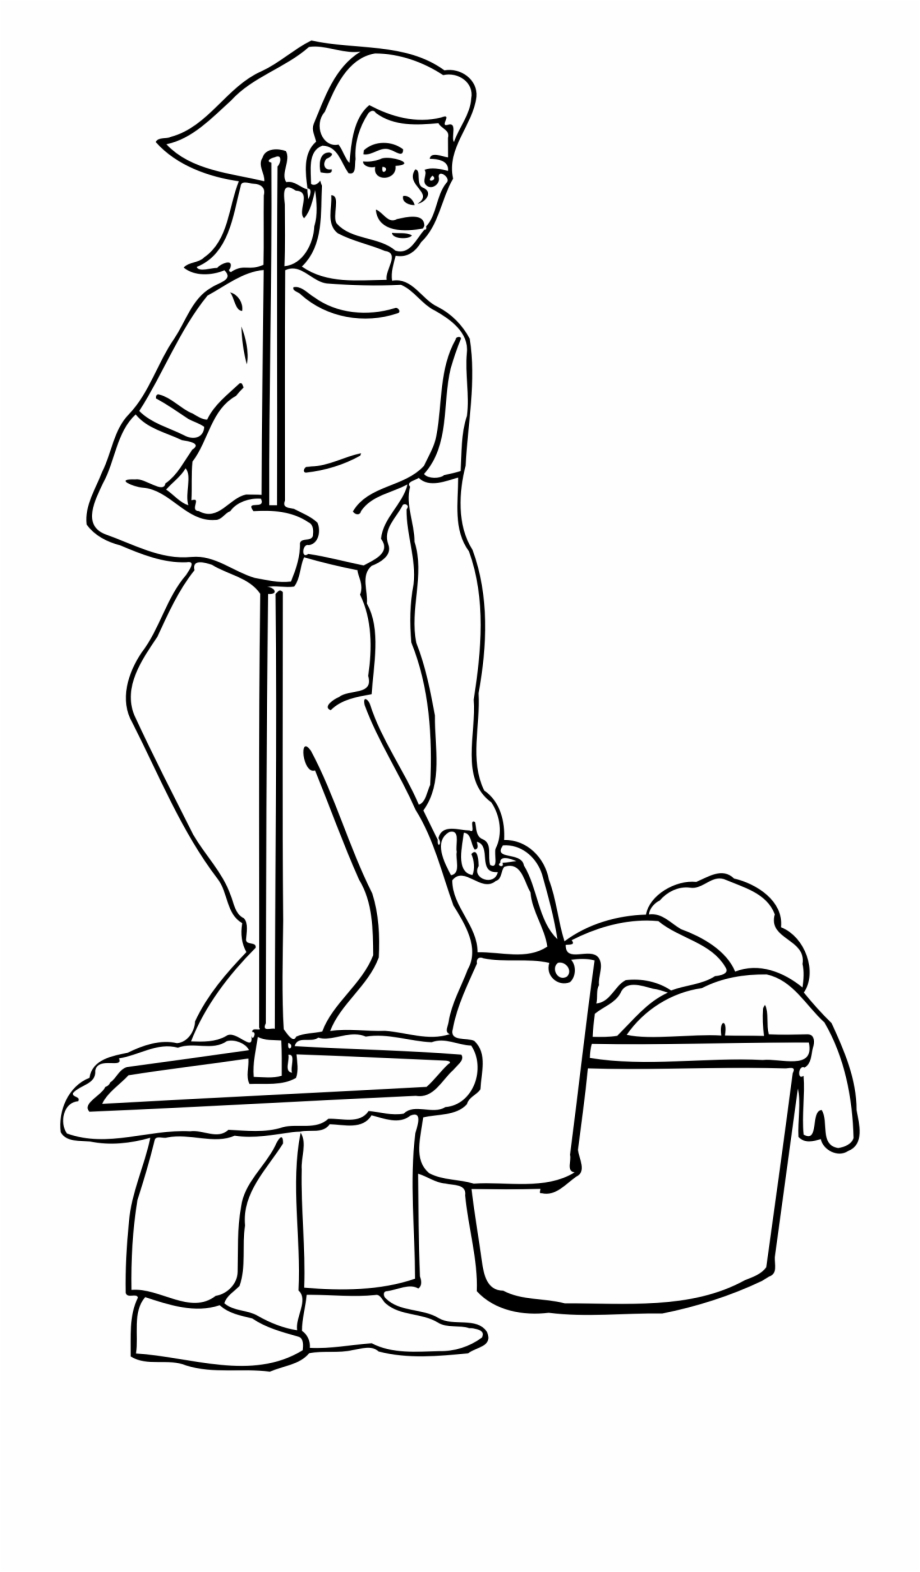 Cleaning Clipart Black And White : cleaning, clipart, black, white, Cleaning, Clipart, Black, White,, Download, Library